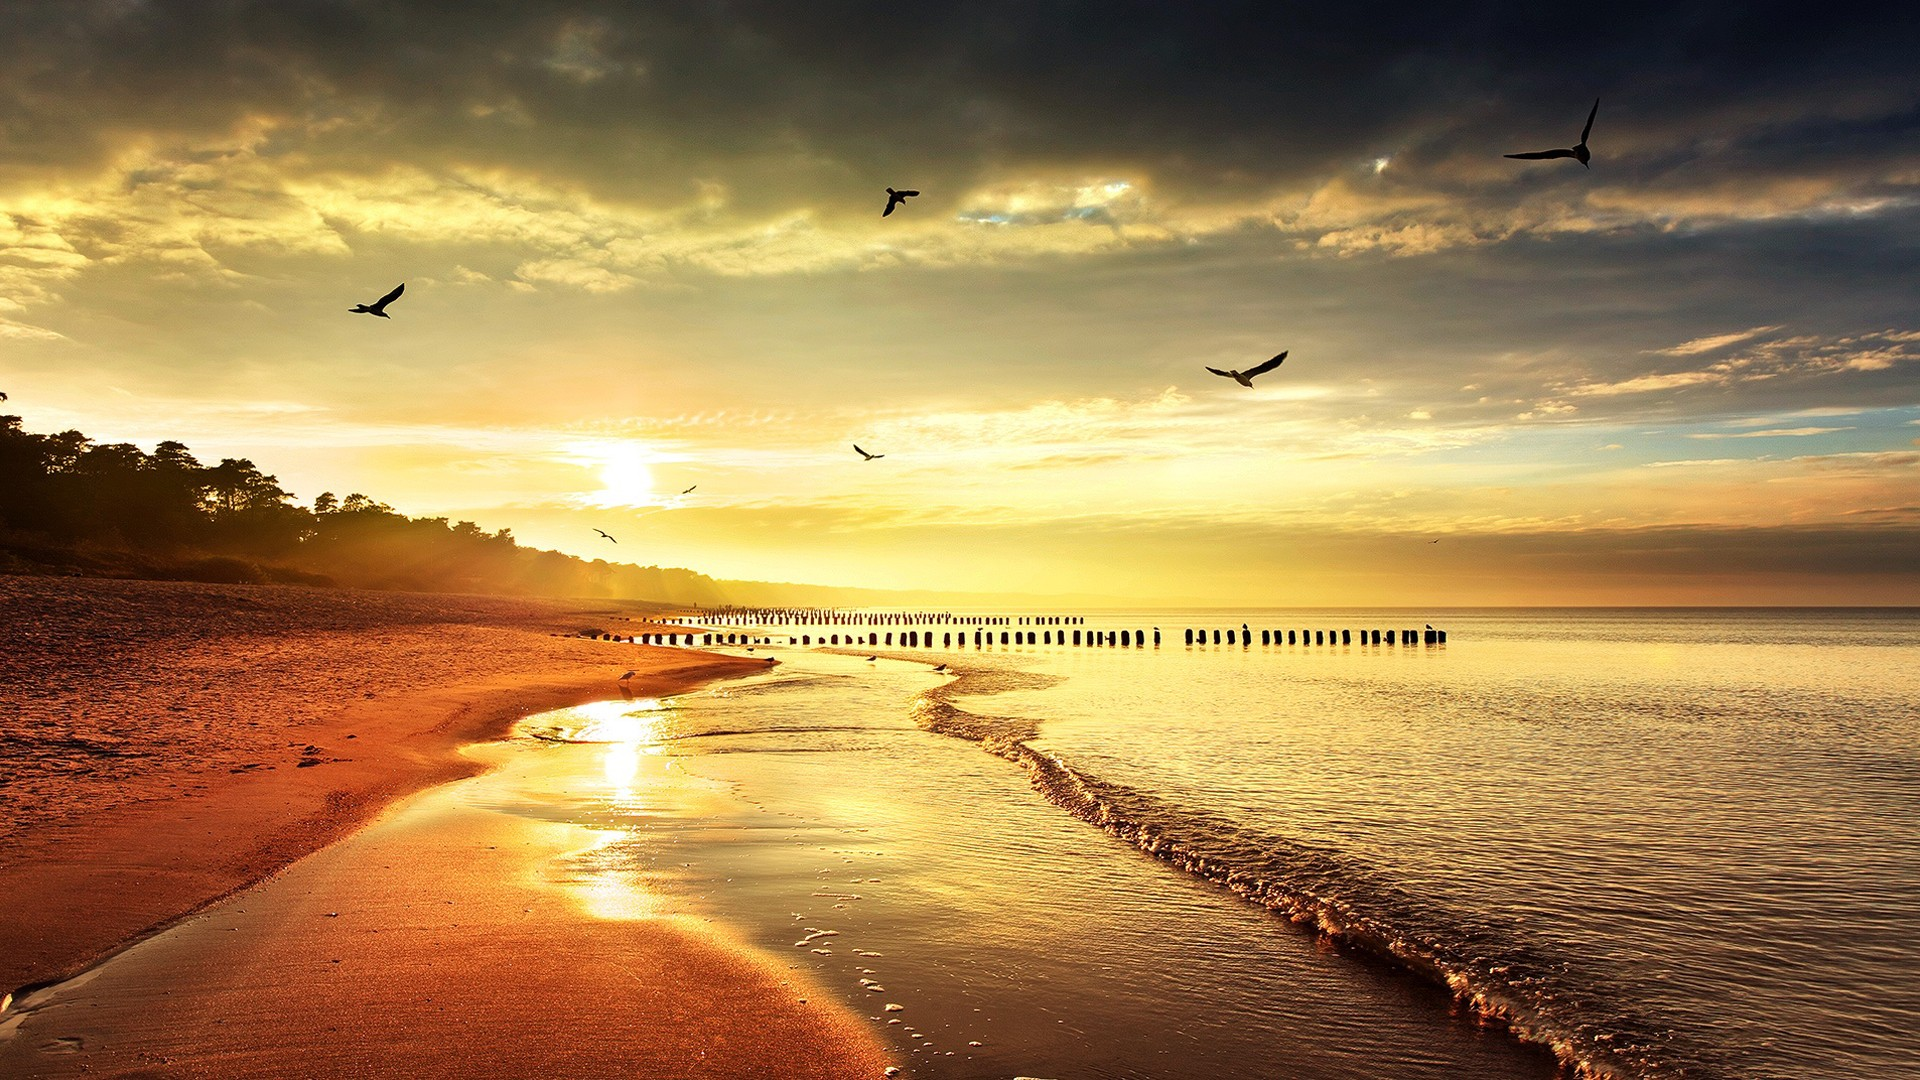 Sunset Beach Wallpaper Hd 1080p